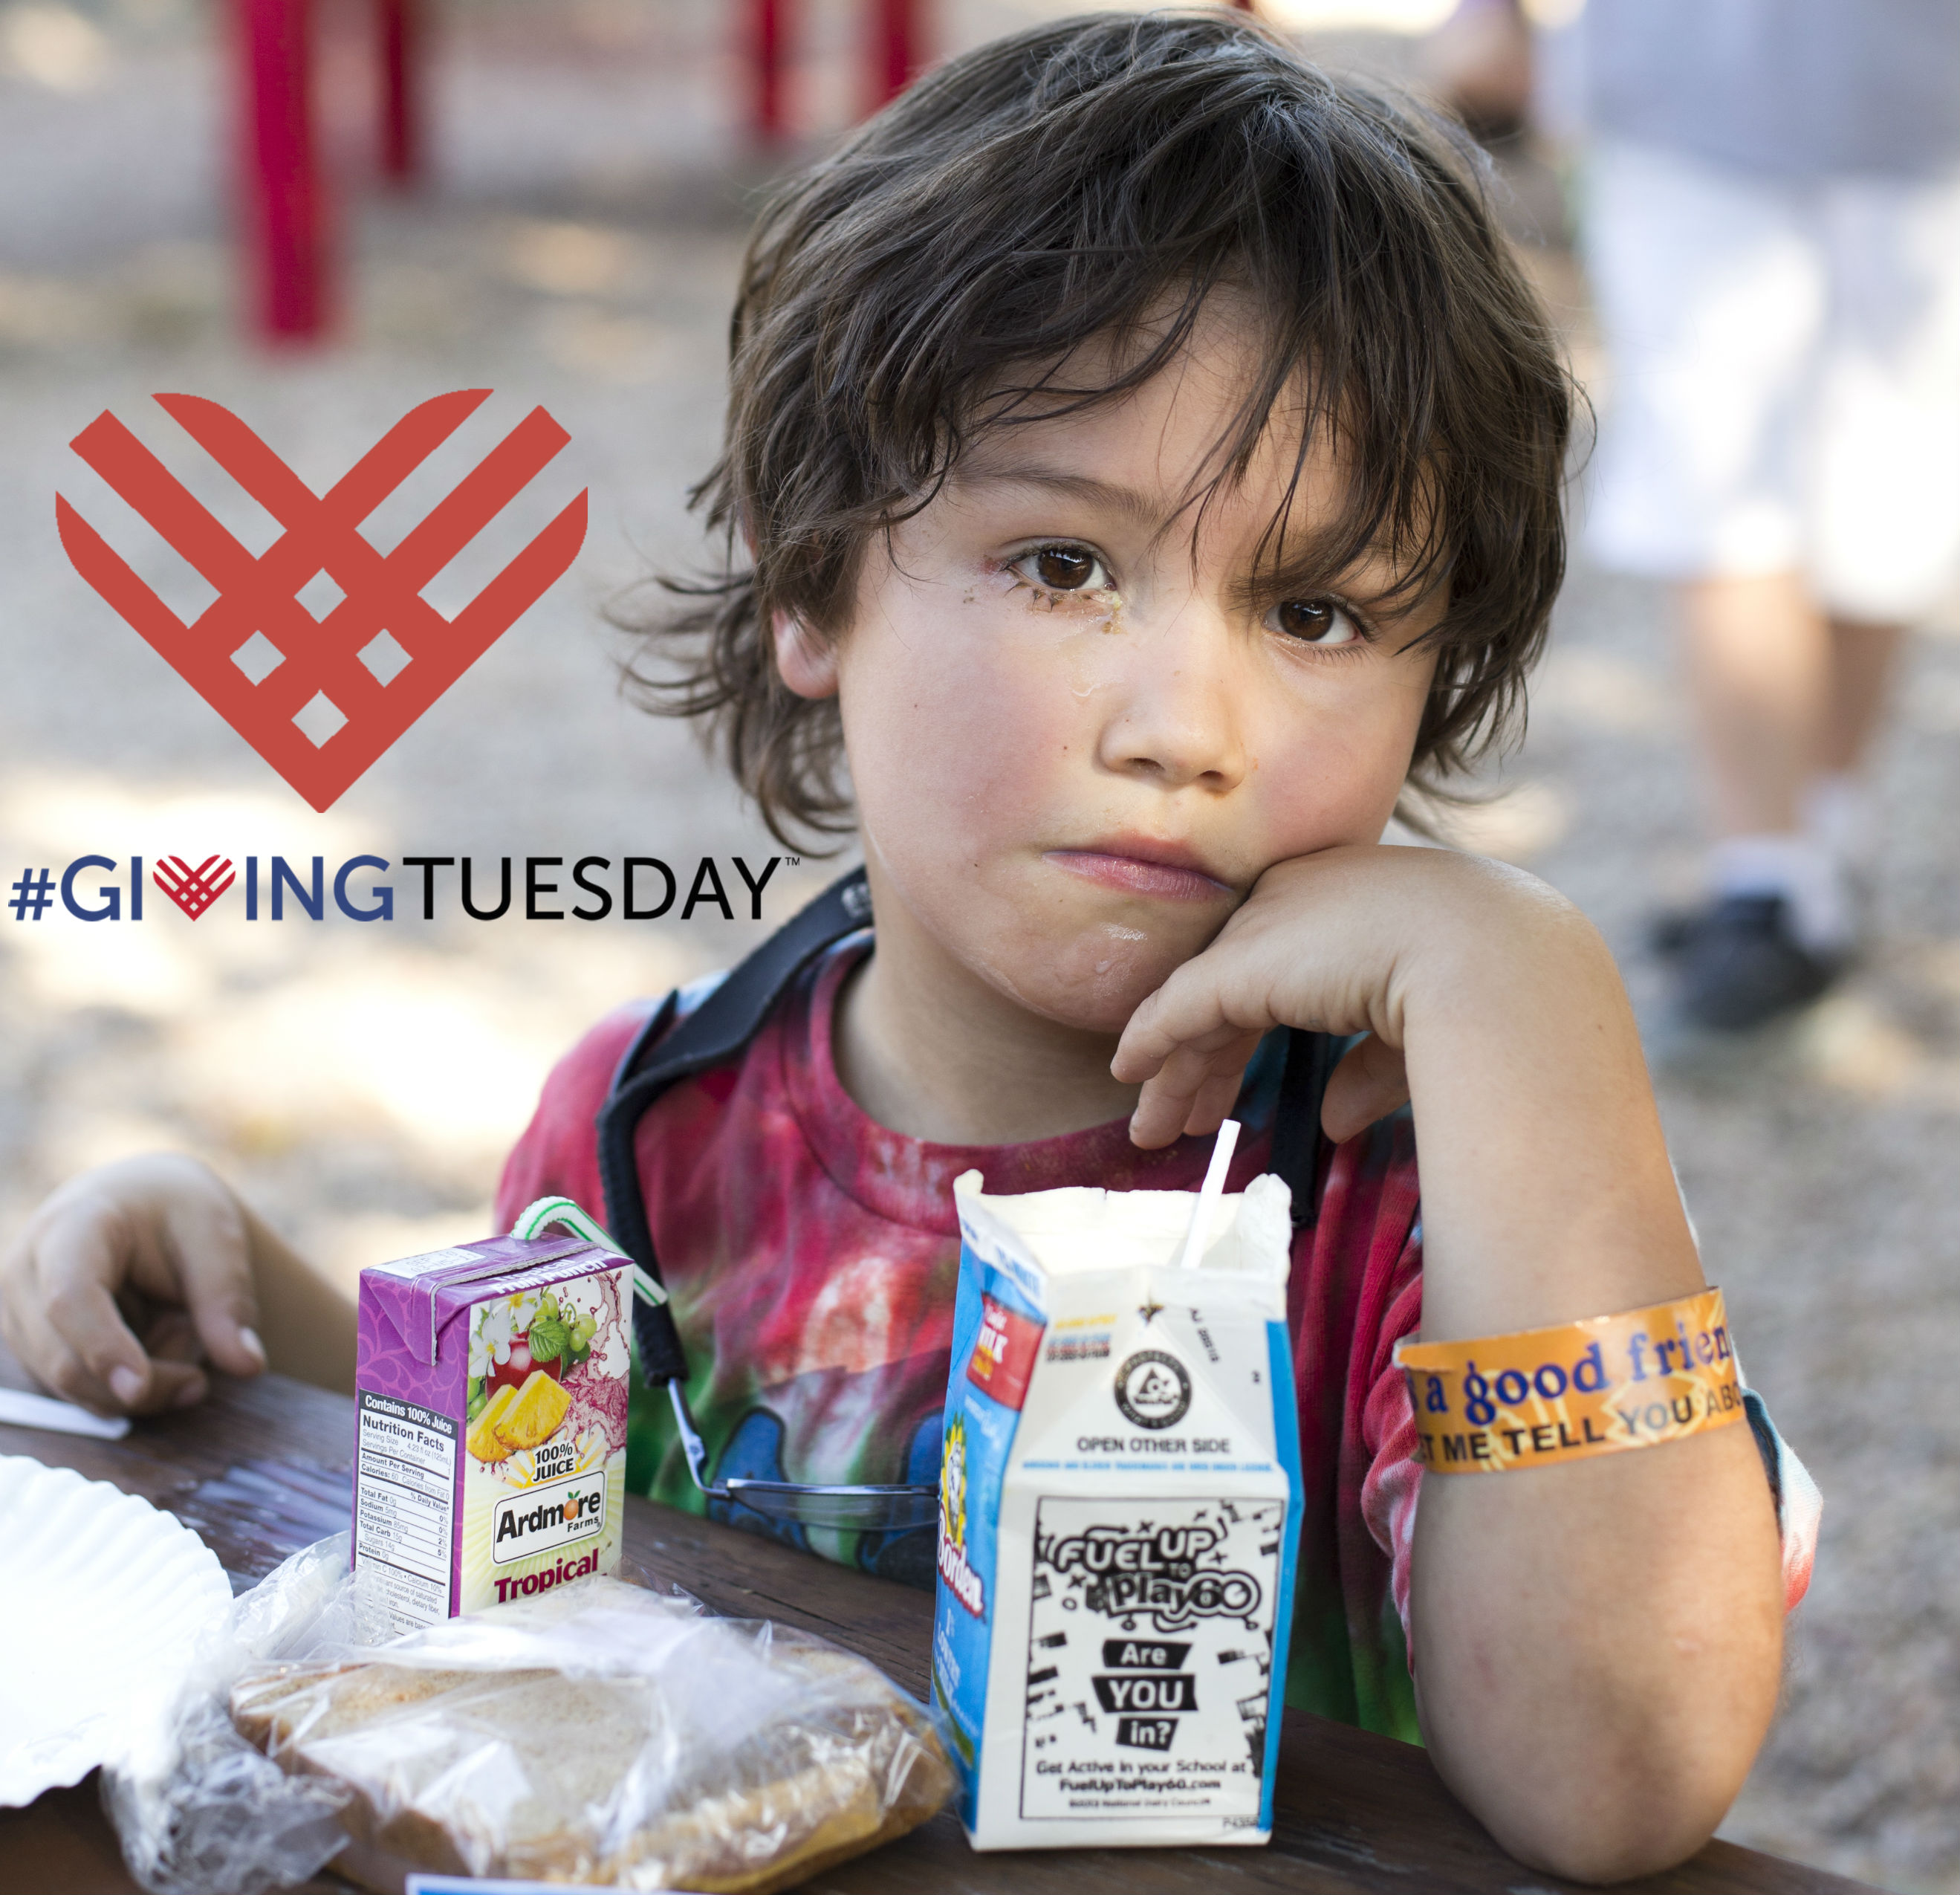 #GivingTuesday Child